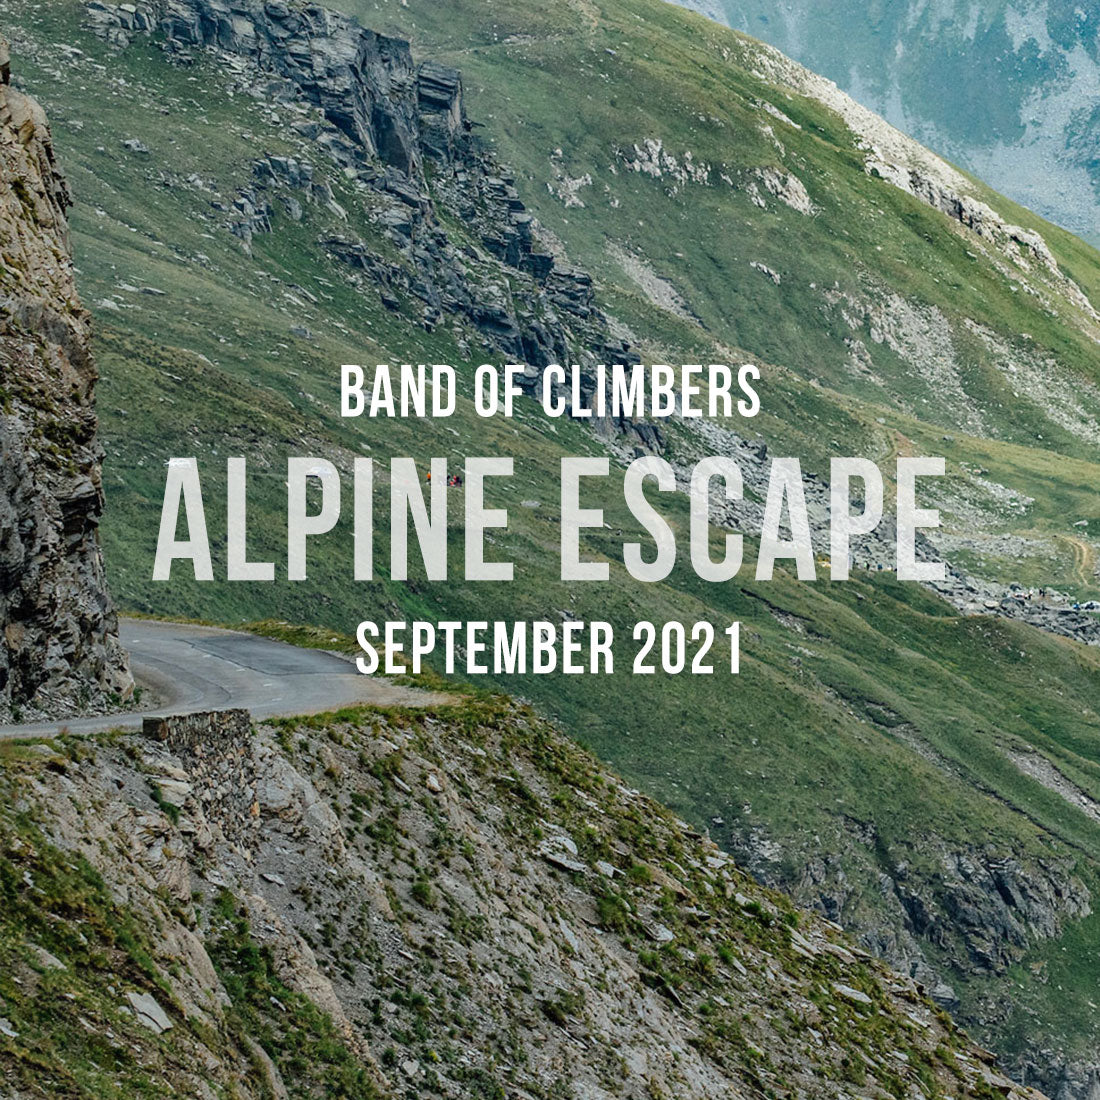 The Alpine Escape September 2021